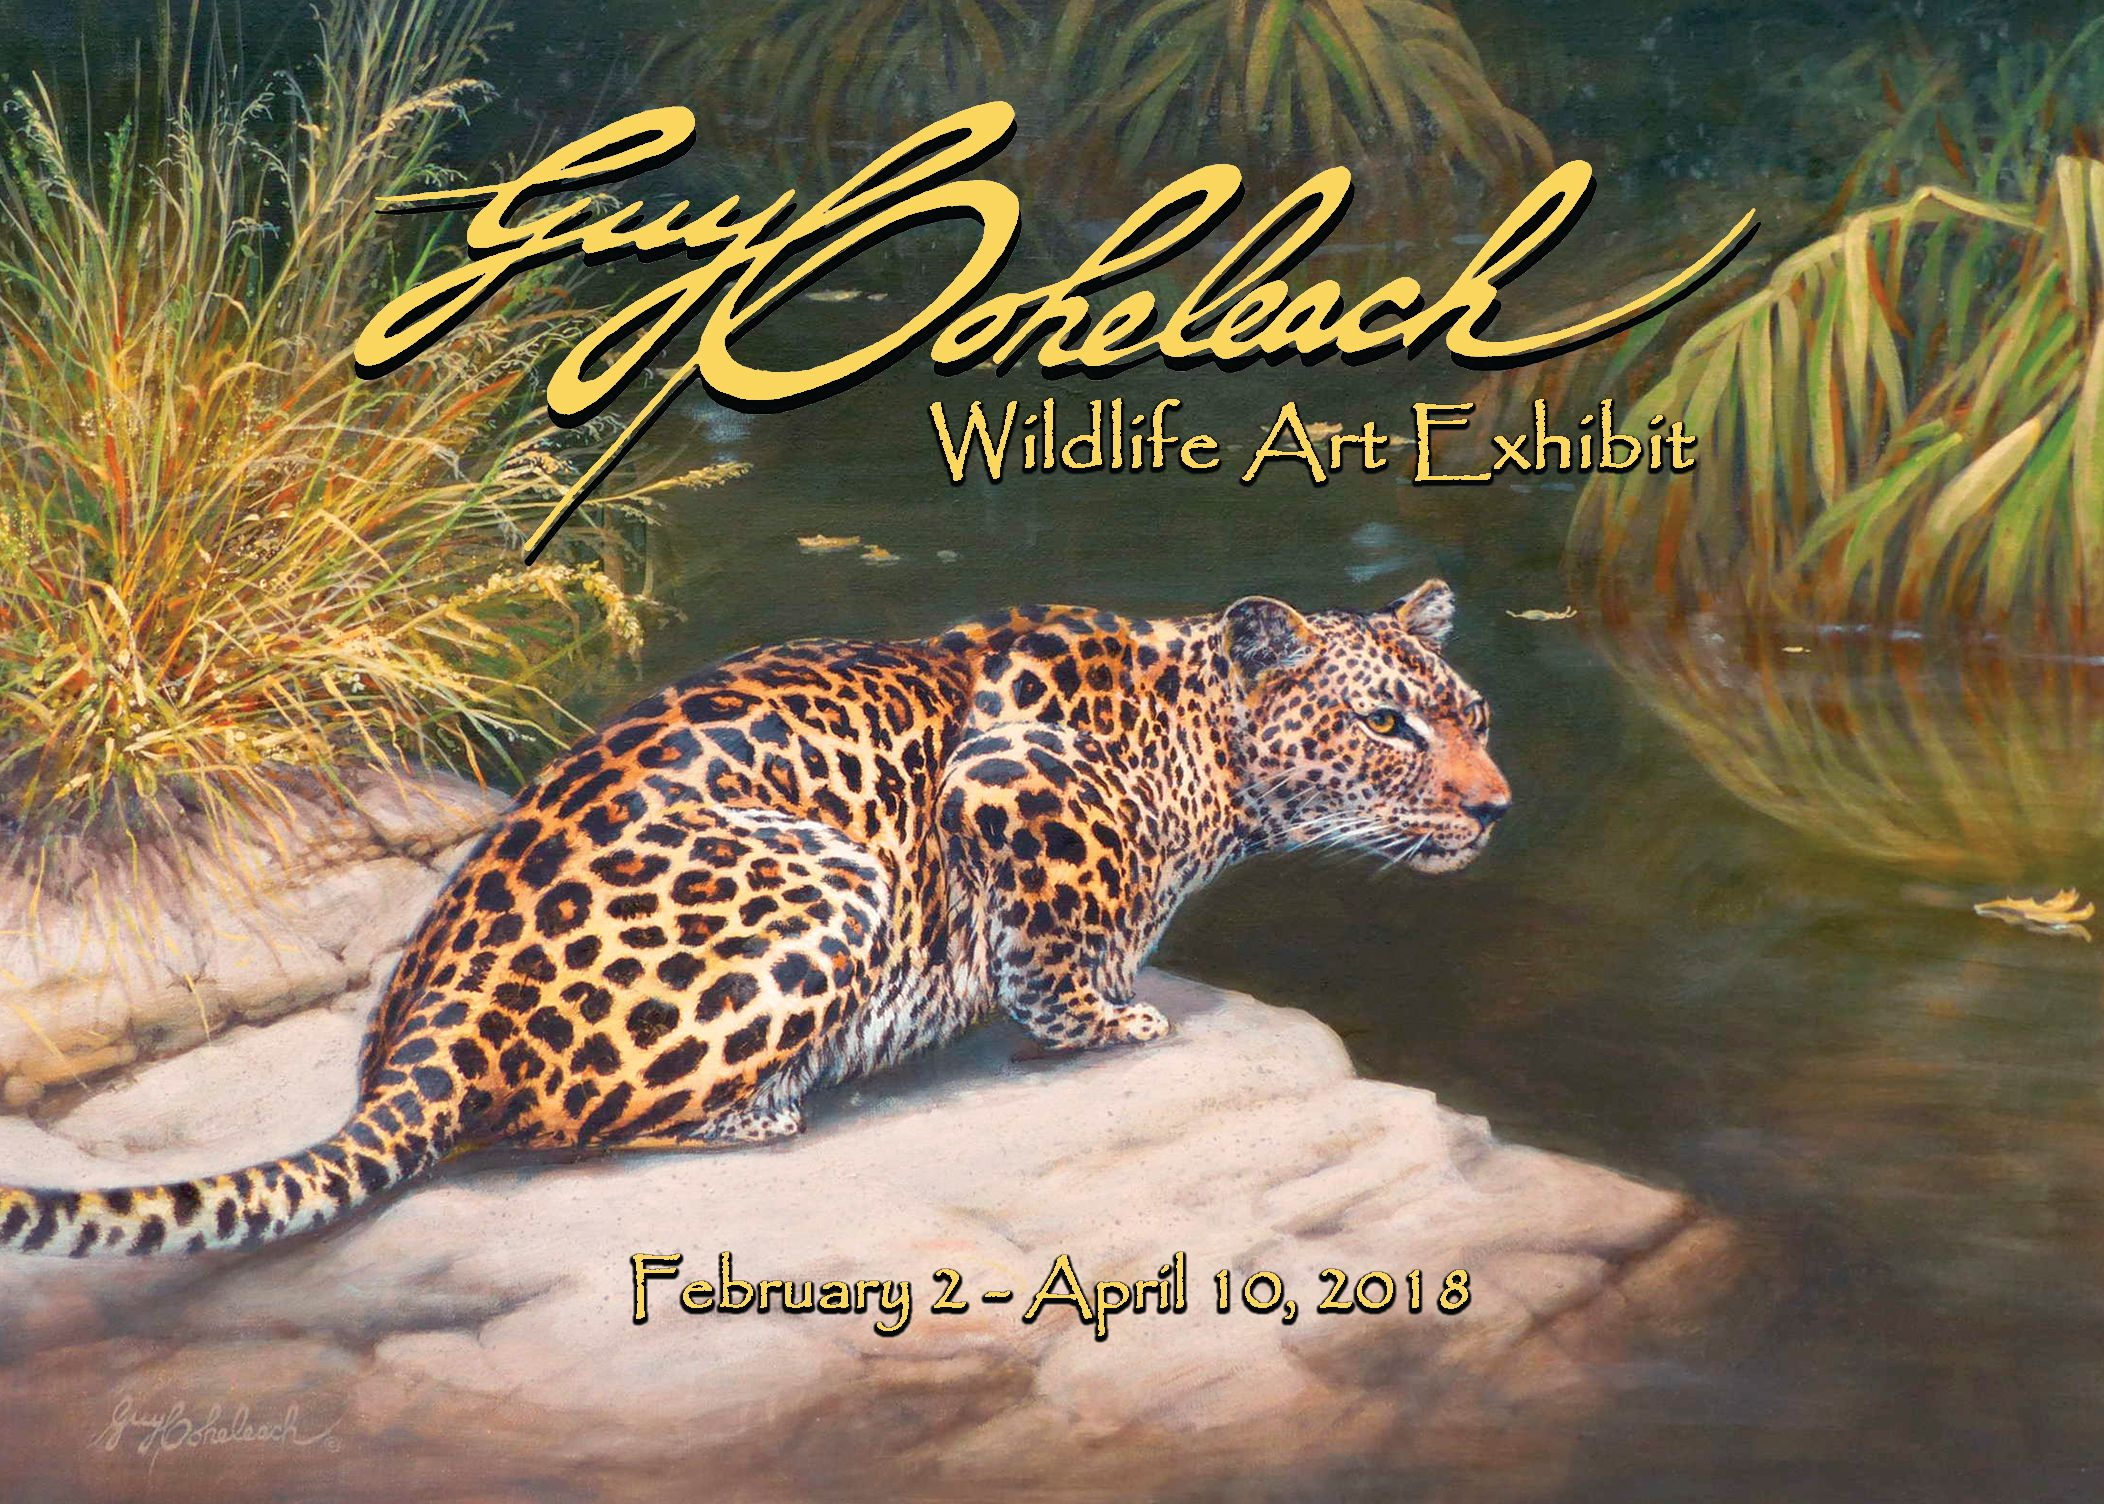 Guy Coheleach Wildlife Art Exshibit